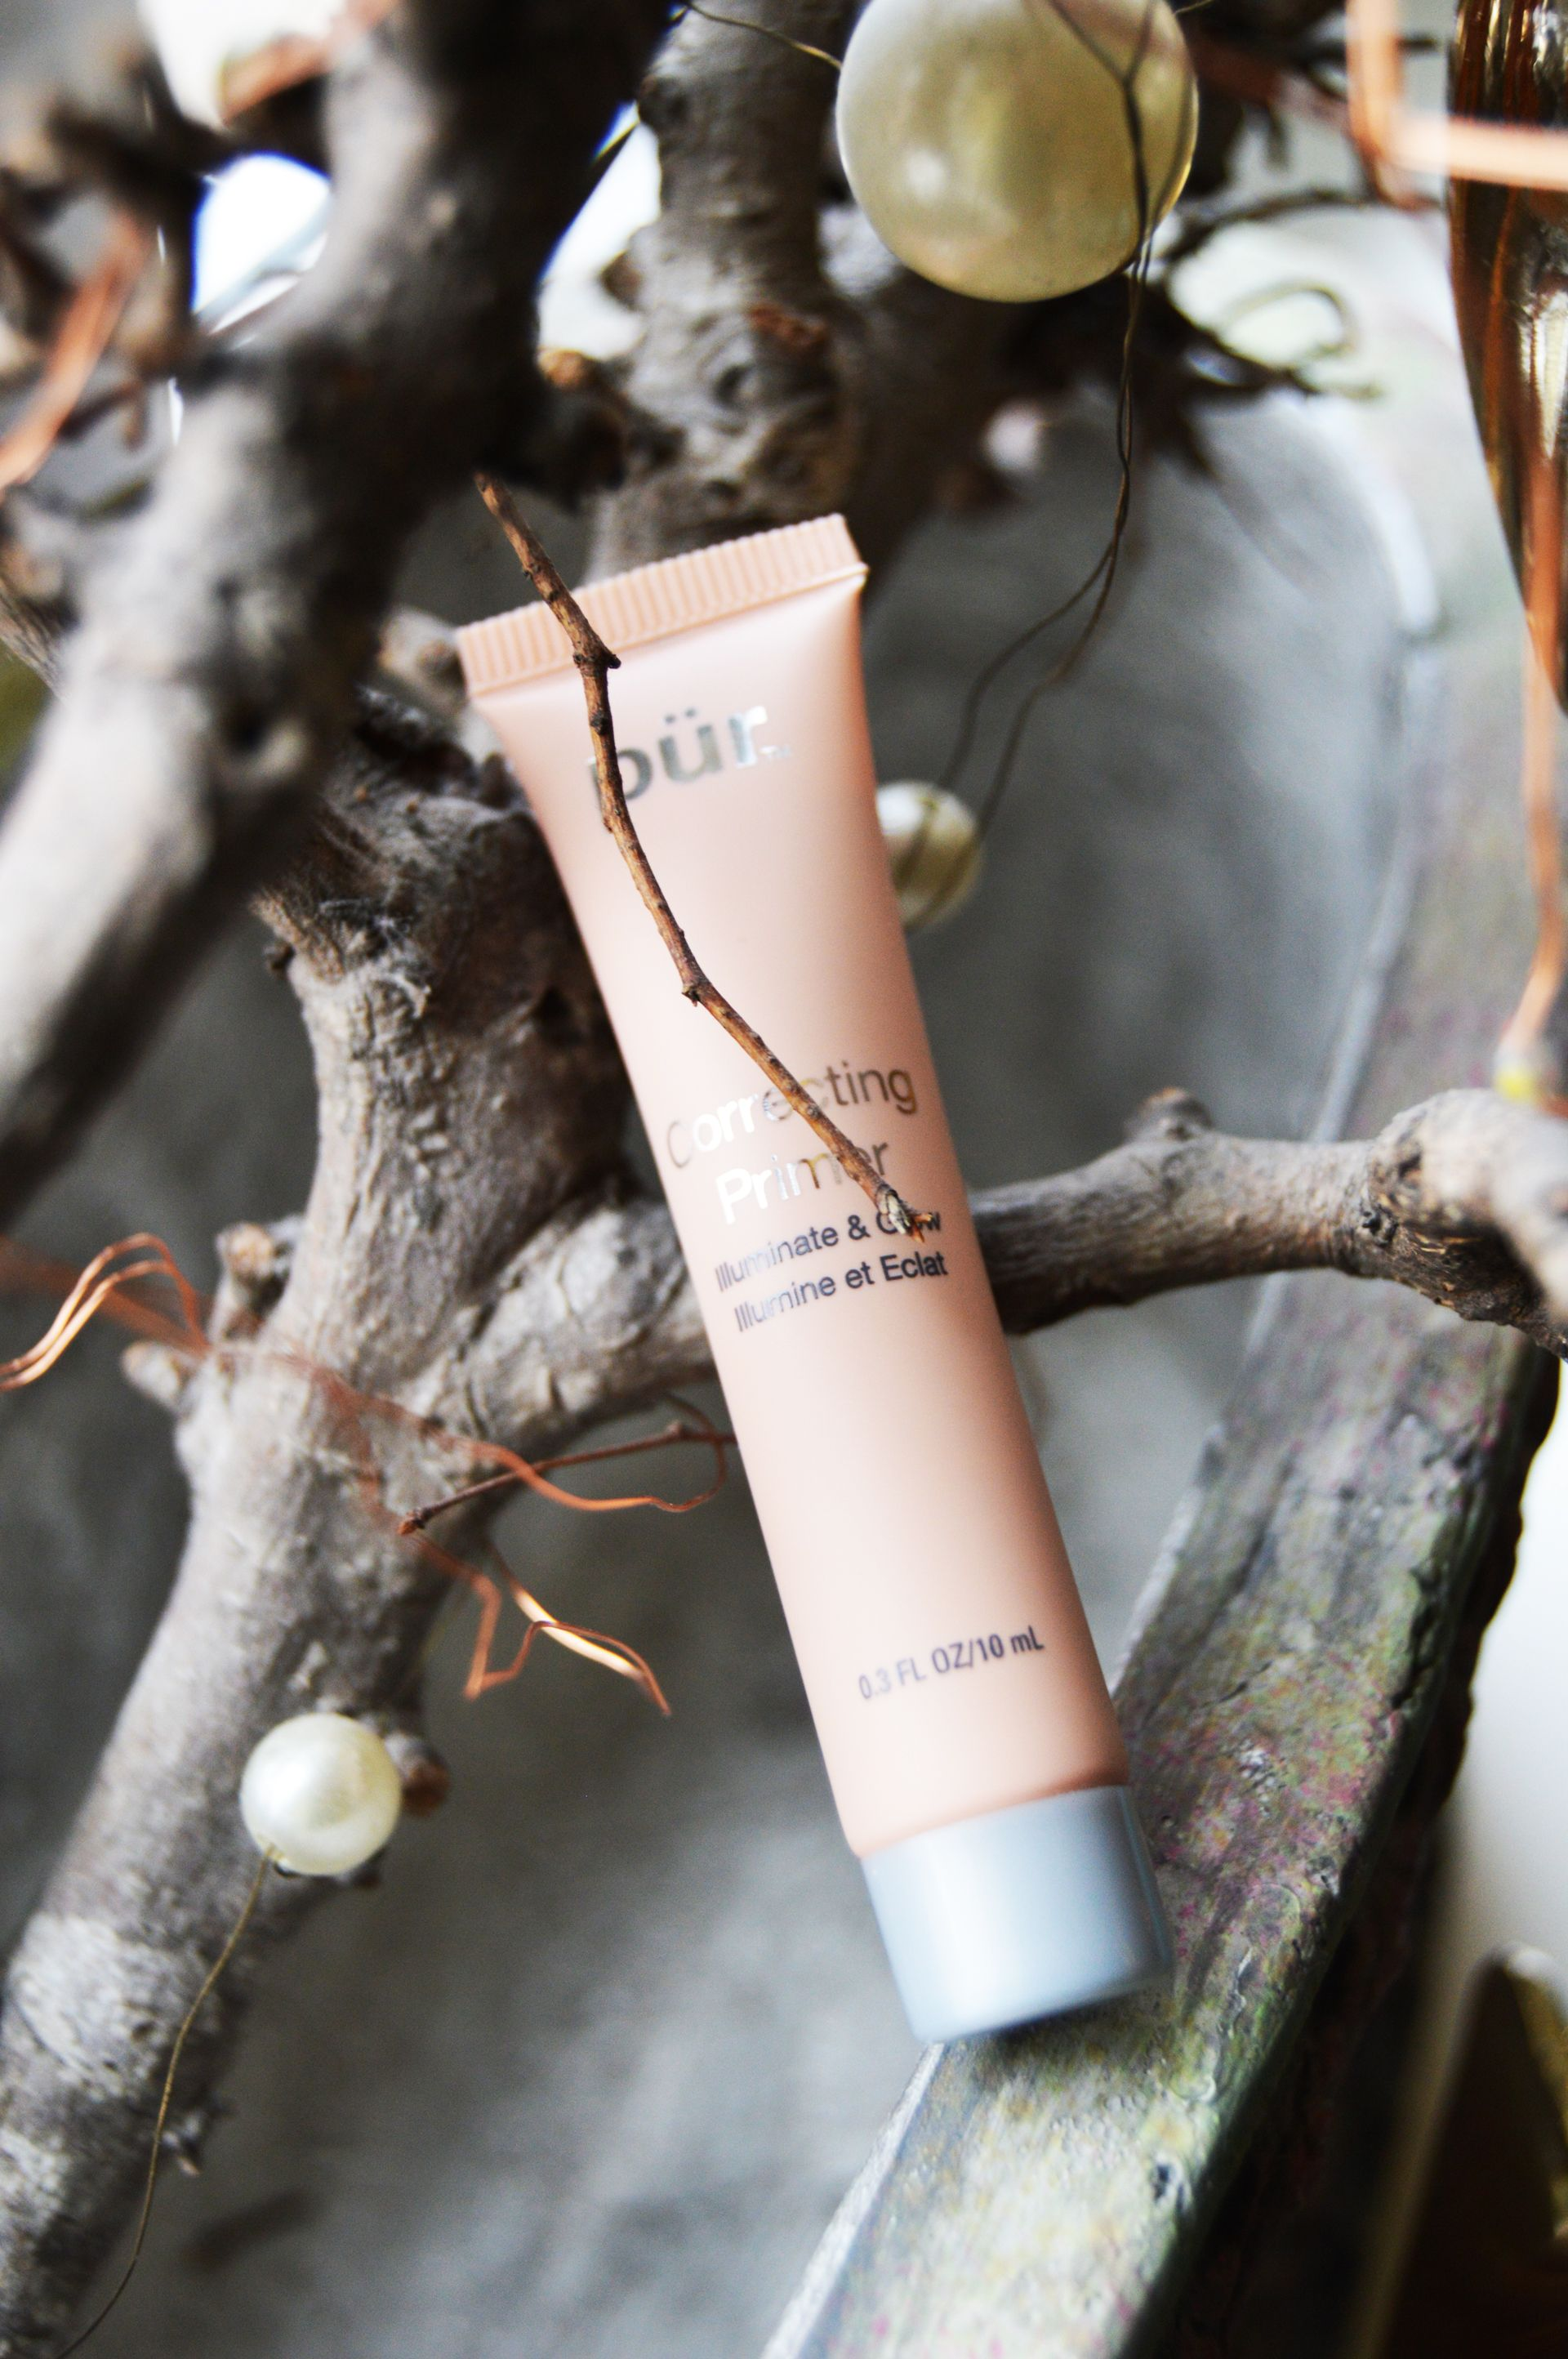 pur Correcting Primer Illuminate & Glow aims to illuminating face primer preps skin and minimizes the appearance of pores, lines, wrinkles and imperfections. M&S Advent Calendar